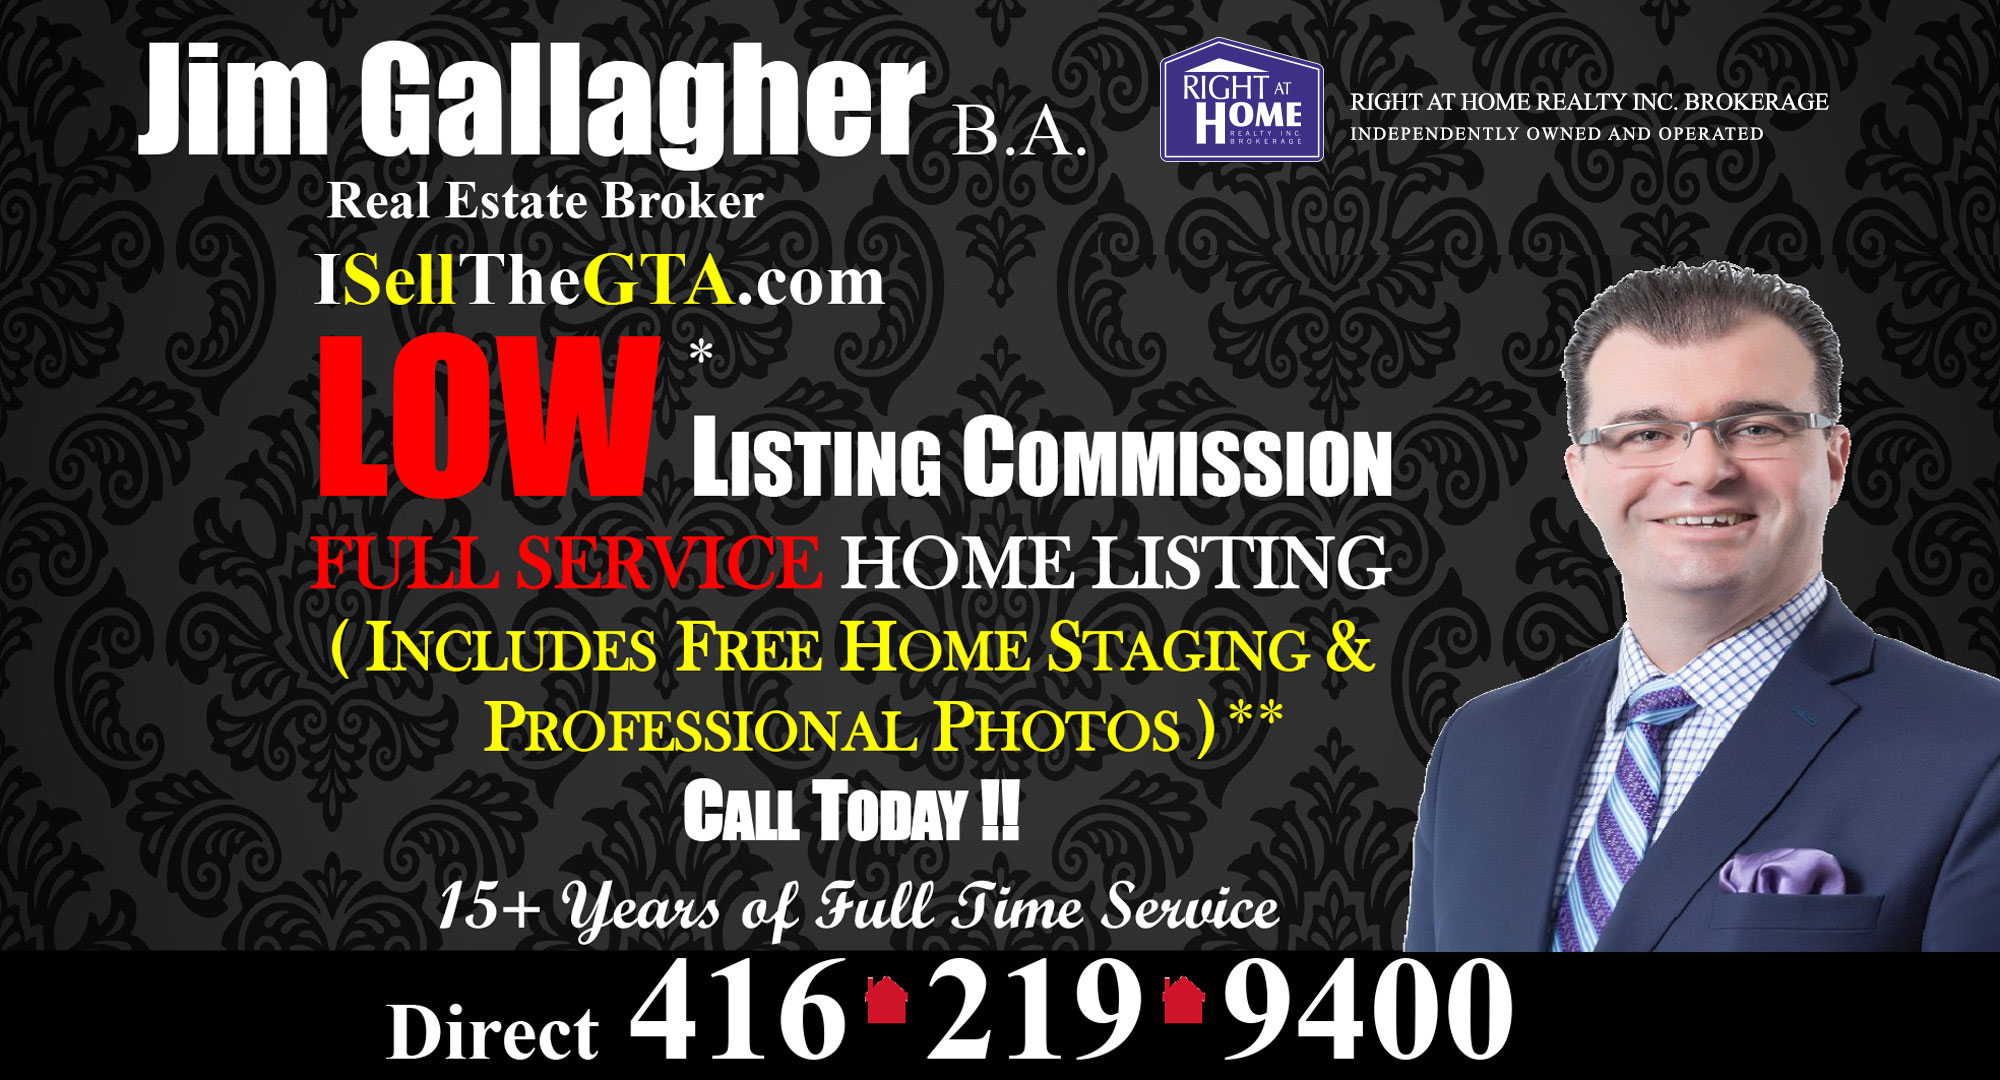 Jim Gallagher Real Estate